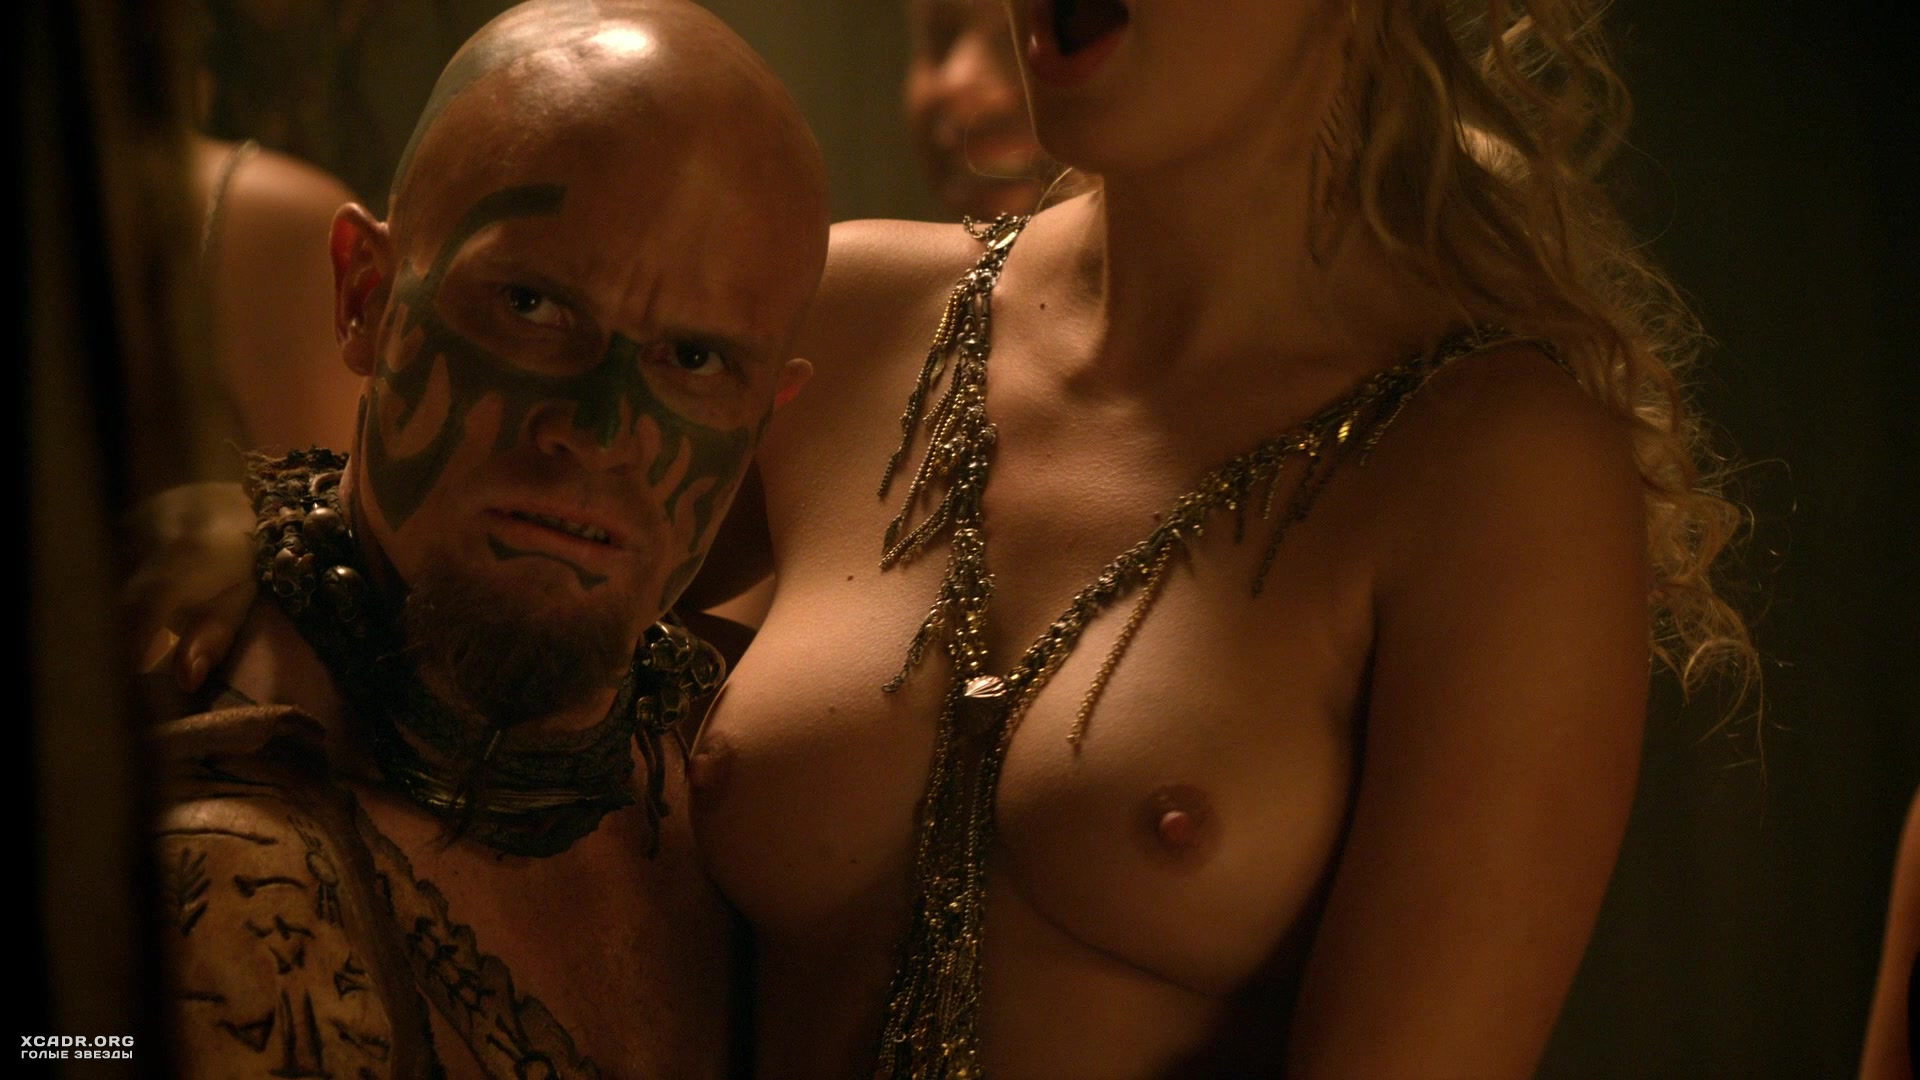 xxx-the-movie-nude